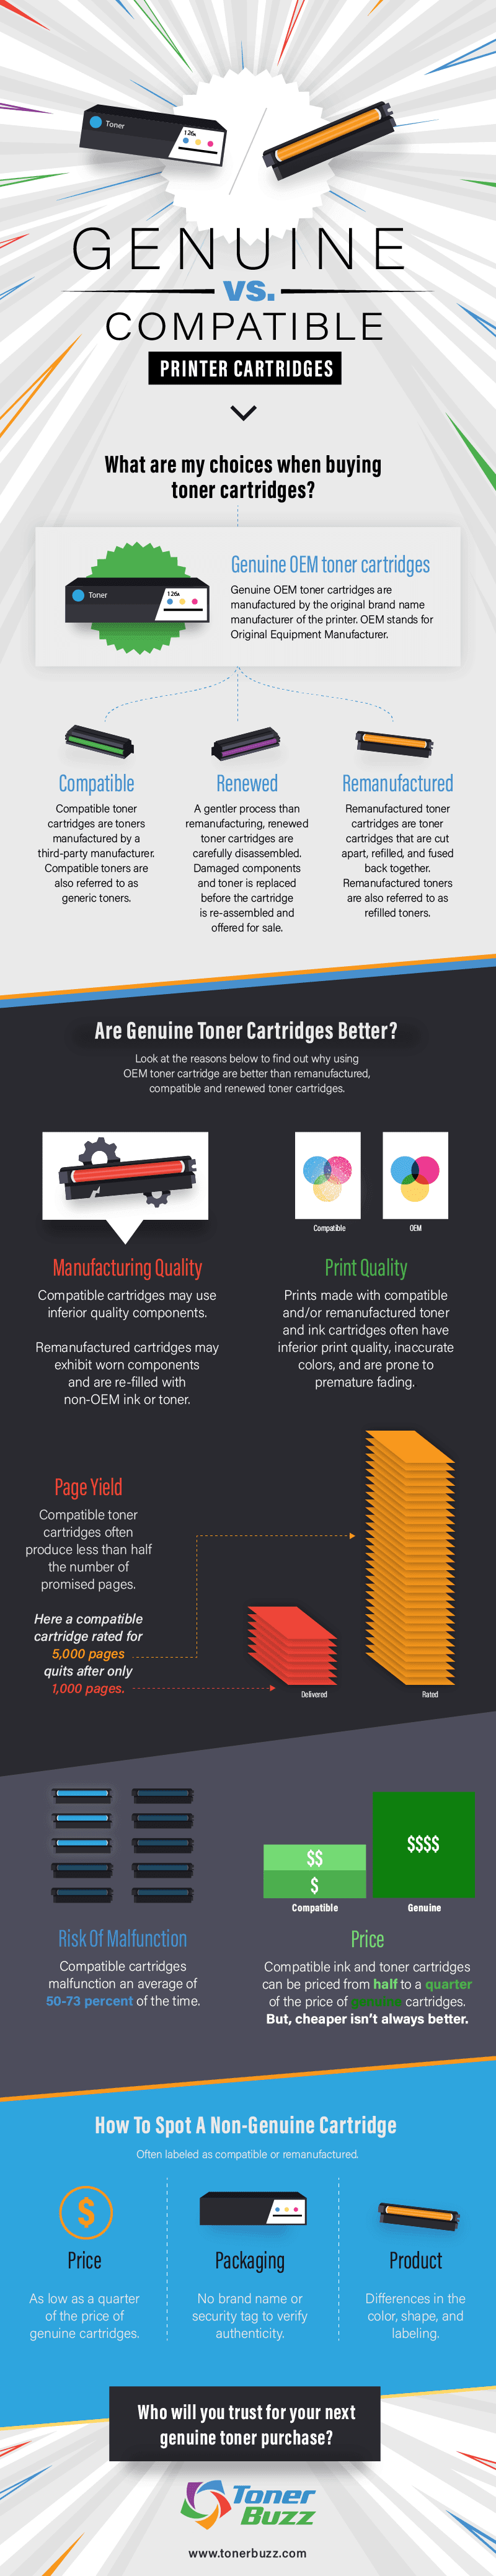 Genuine OEM vs. Compatible vs. Remanufactured #infographic